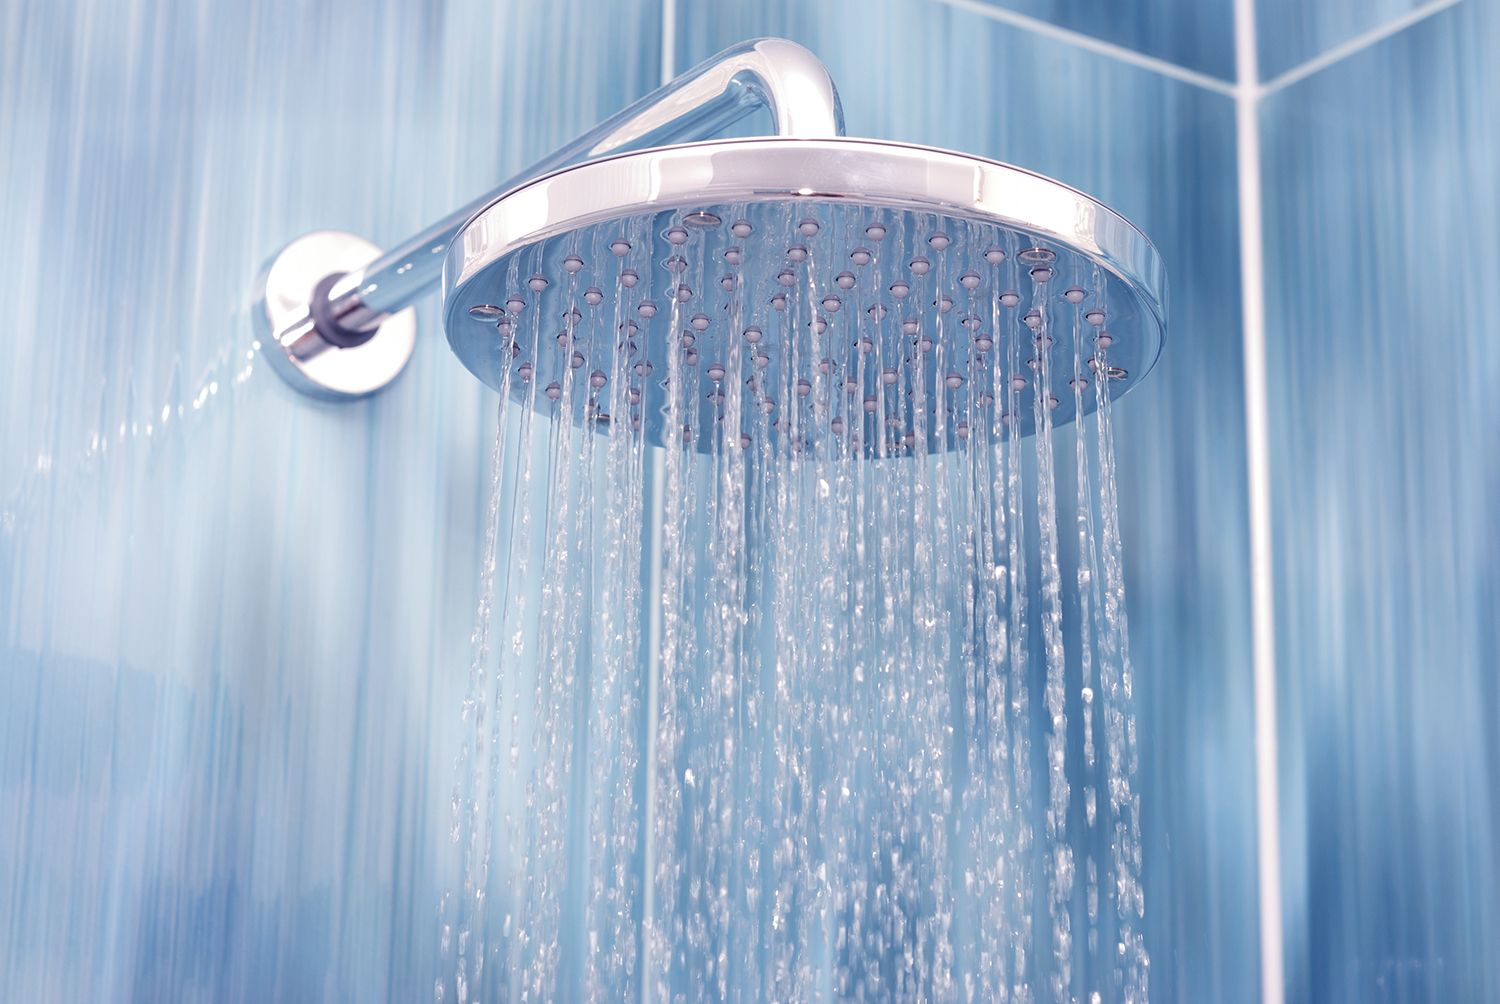 6 types of shower heads to consider for your bathroom renovation